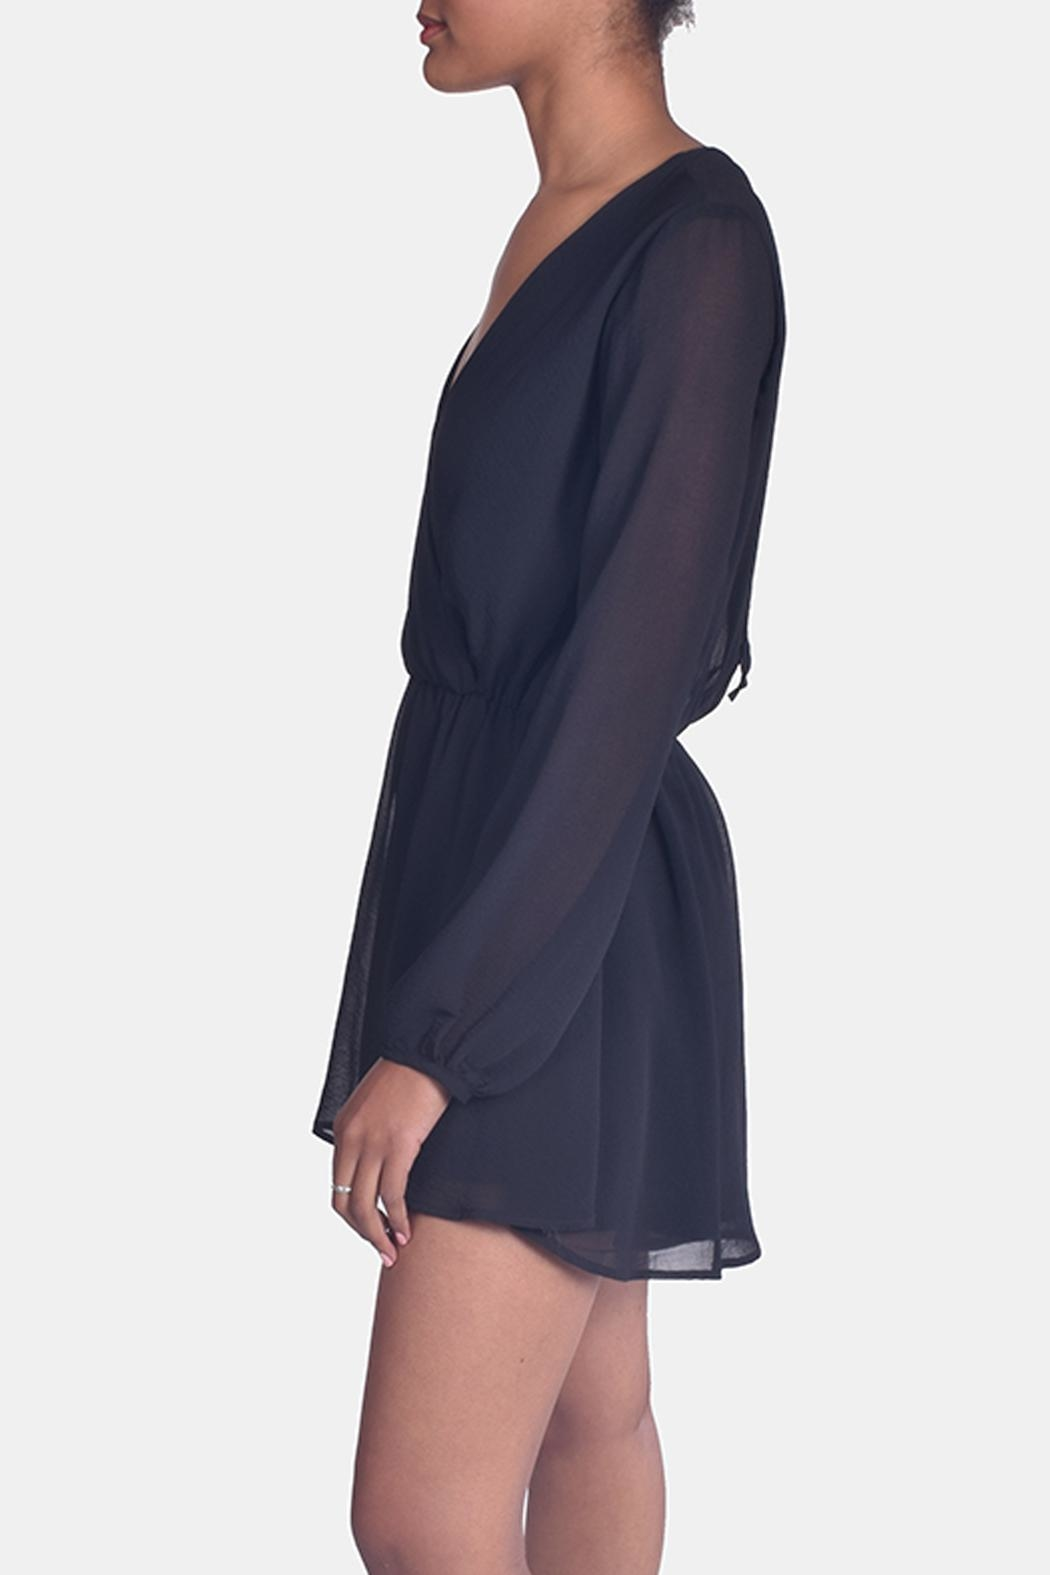 Final Touch Black Chiffon Romper - Side Cropped Image